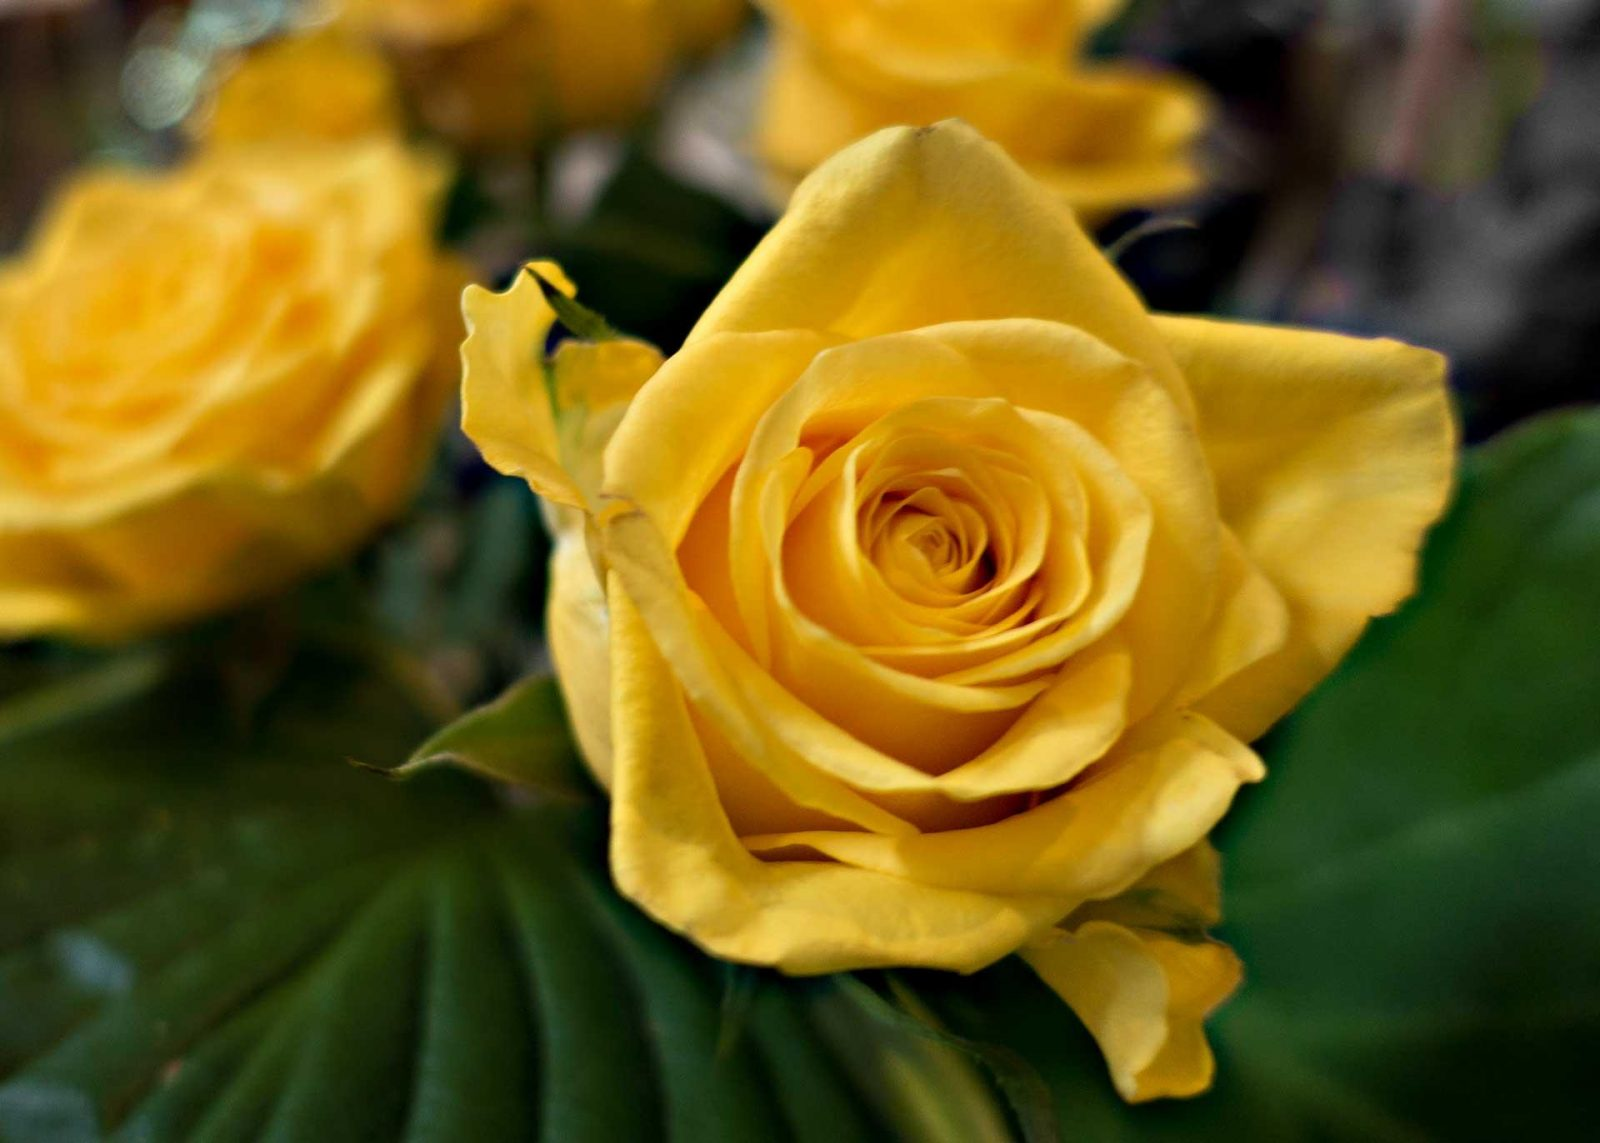 What's on my List for Thursday on Falcondale Life blog? yellow rose flower